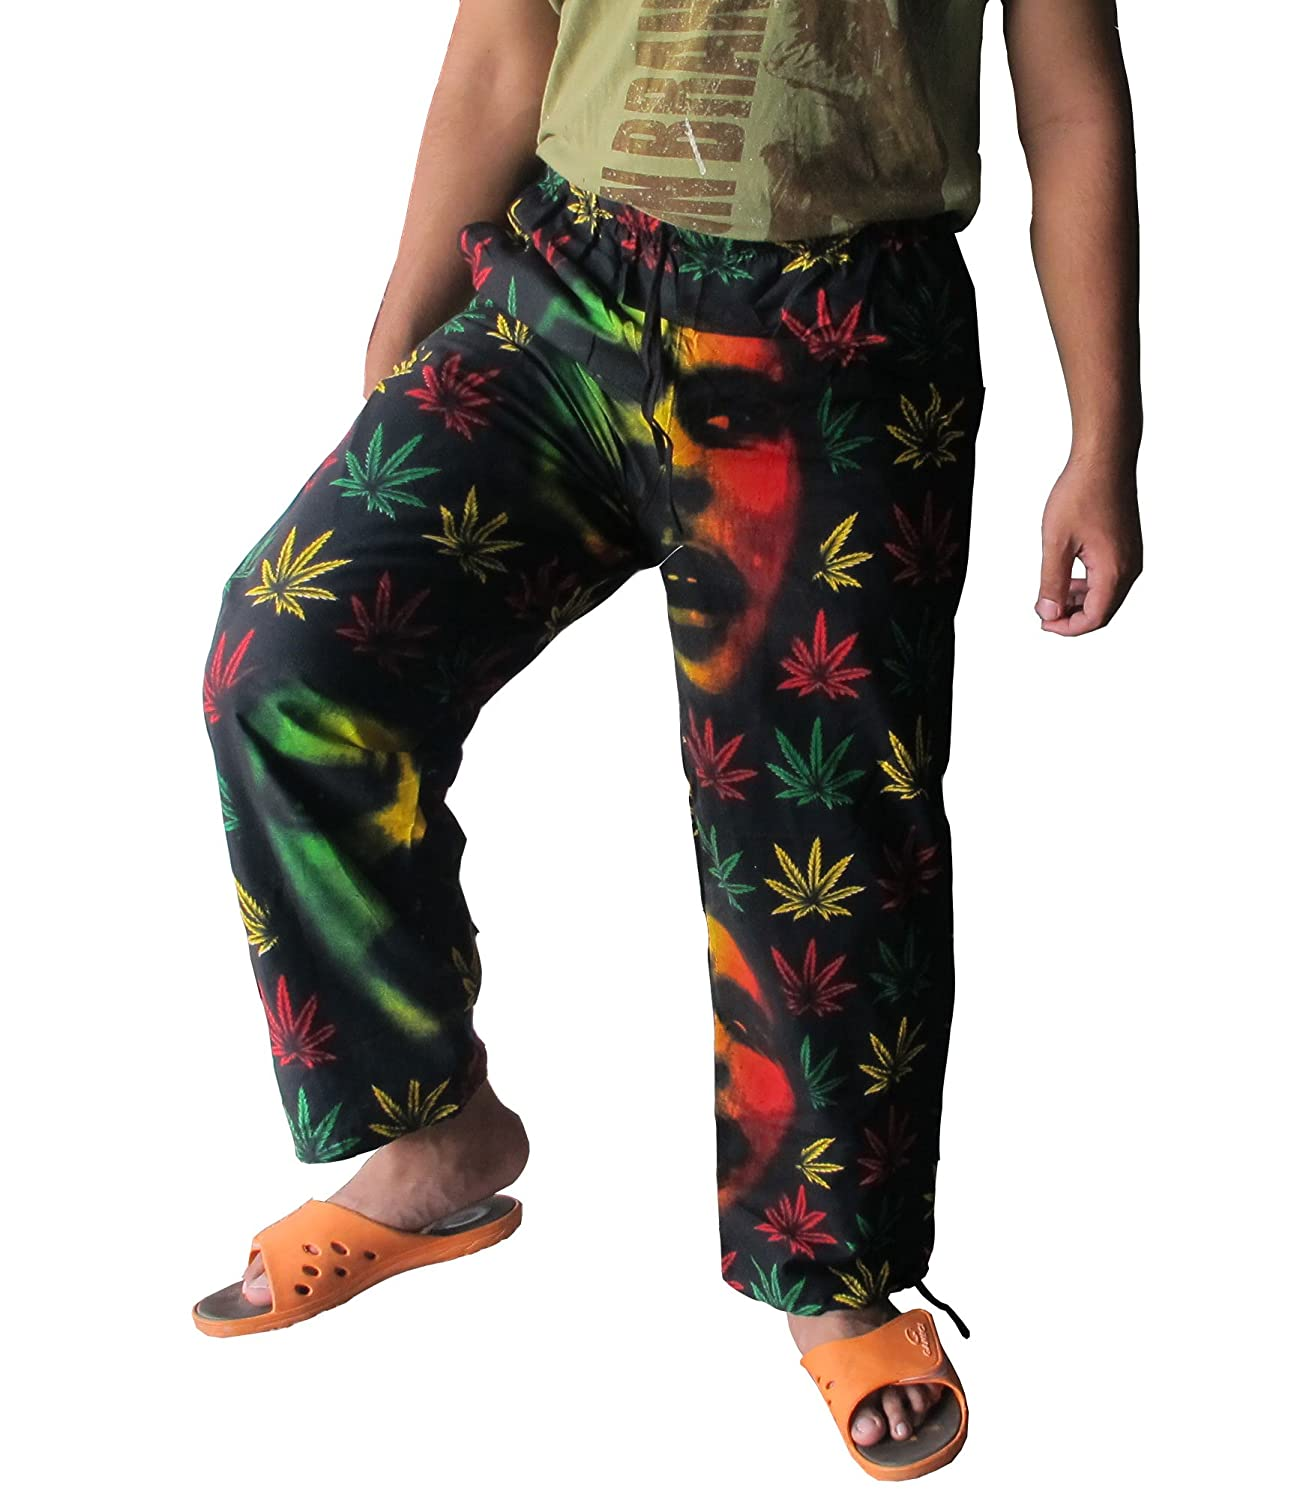 Free shpping Bob Marley Style With Colourfull Cotton Fit For Size 27-38 inches Long 38 inches